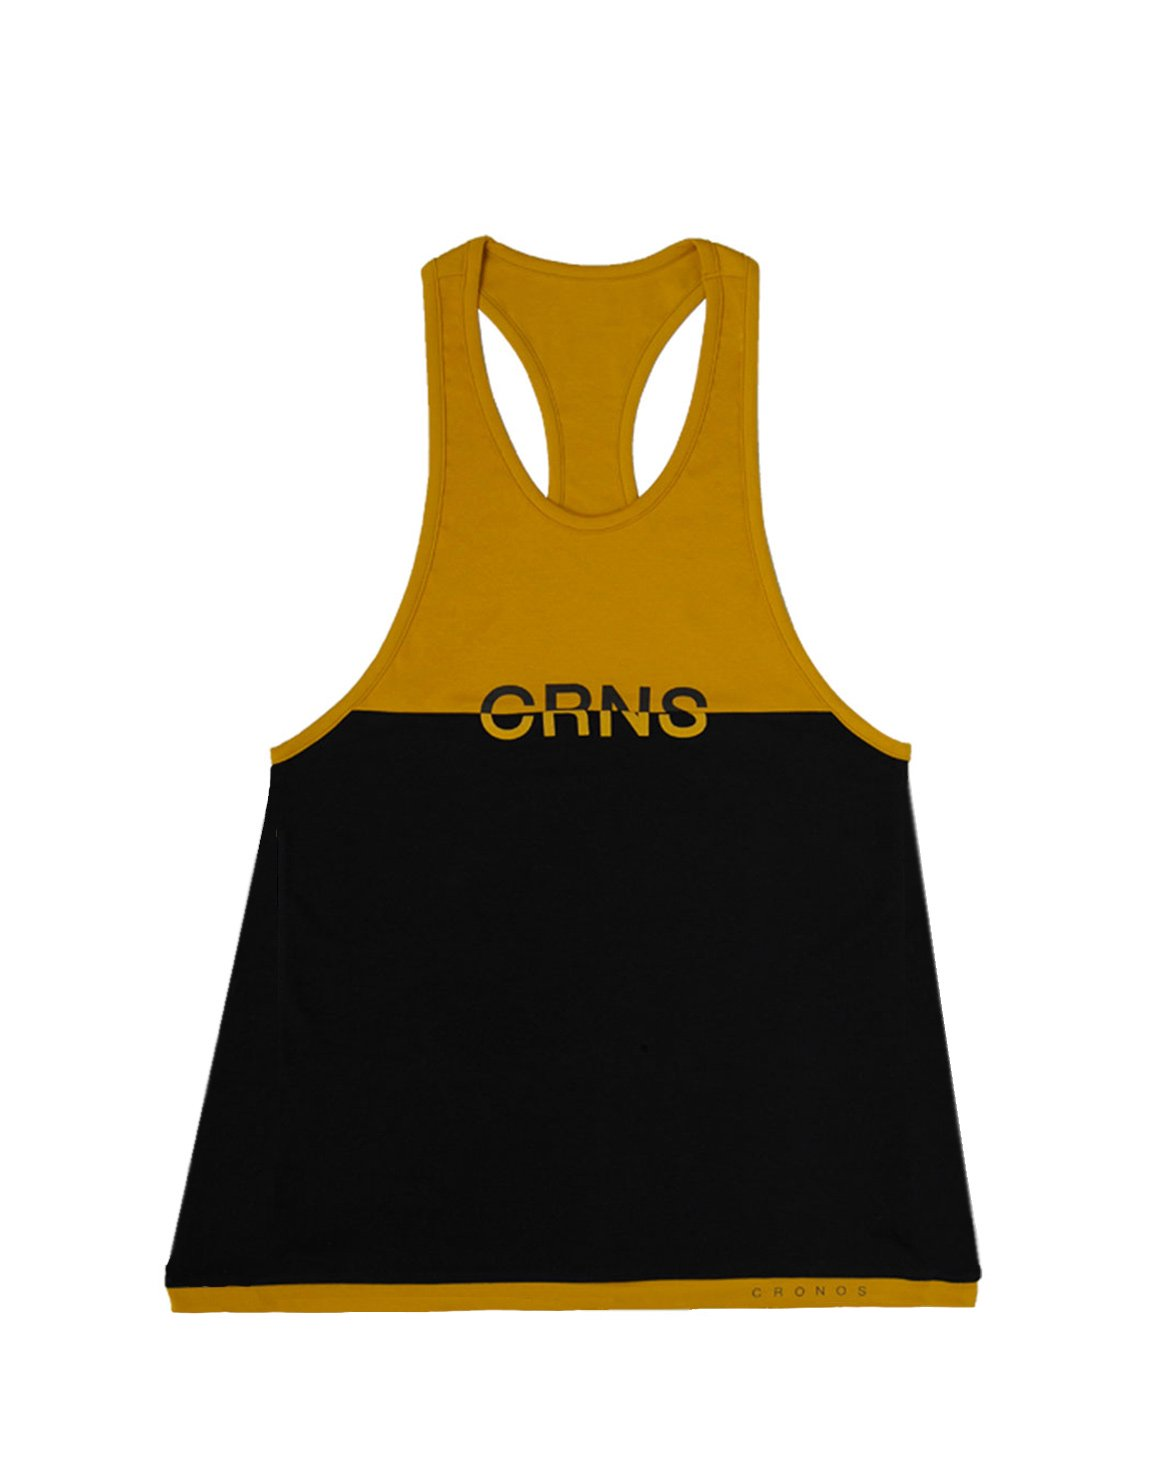 <img class='new_mark_img1' src='https://img.shop-pro.jp/img/new/icons55.gif' style='border:none;display:inline;margin:0px;padding:0px;width:auto;' />CRNS Bi-COLOR TANK TOP【BLACK×YELLOW】